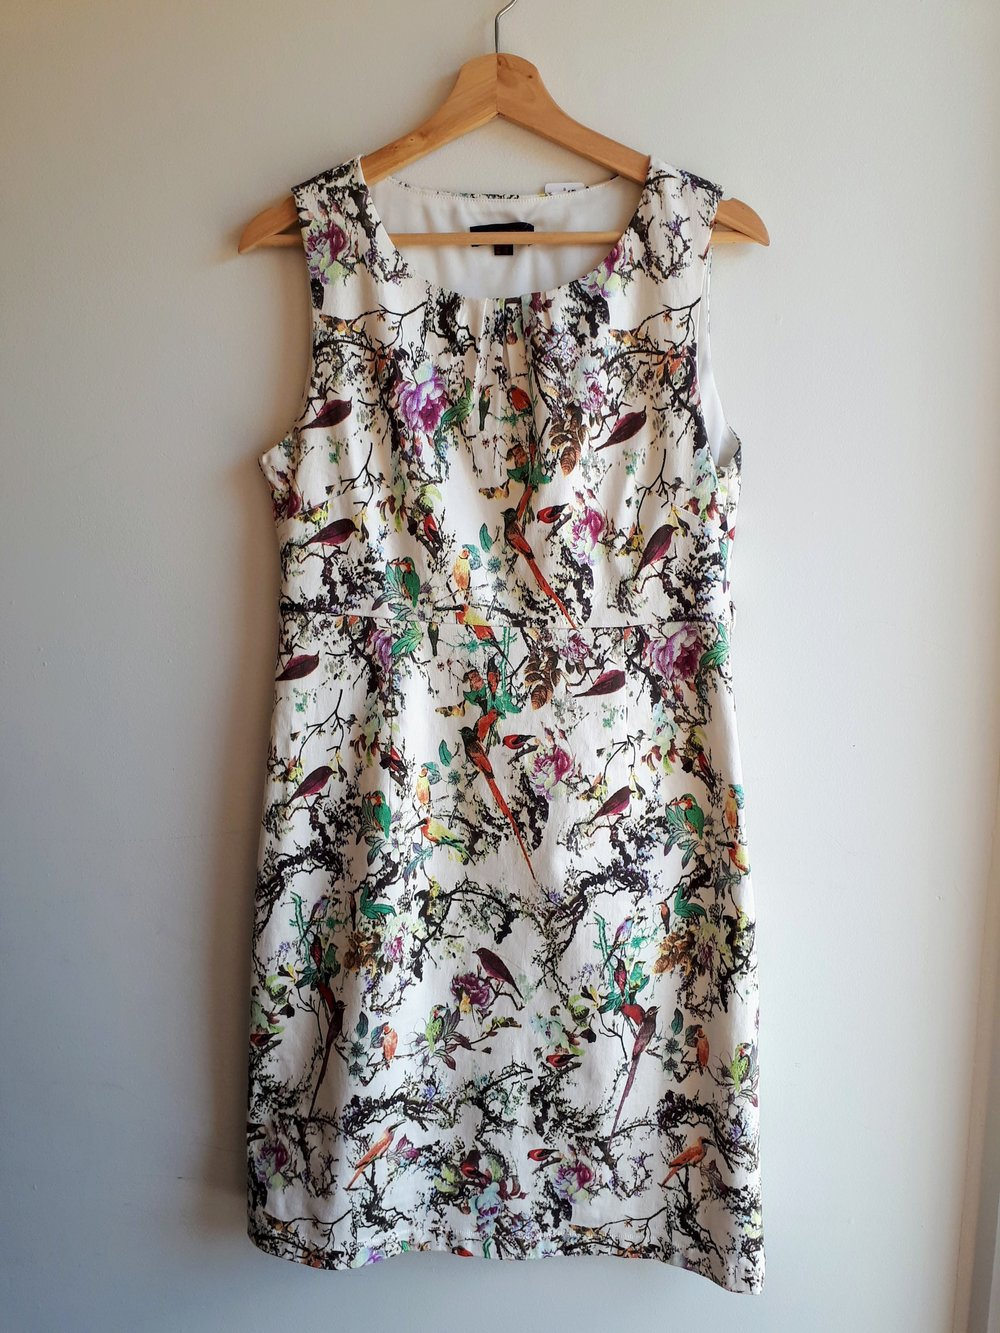 Super-Stition dress; Size 14, $36